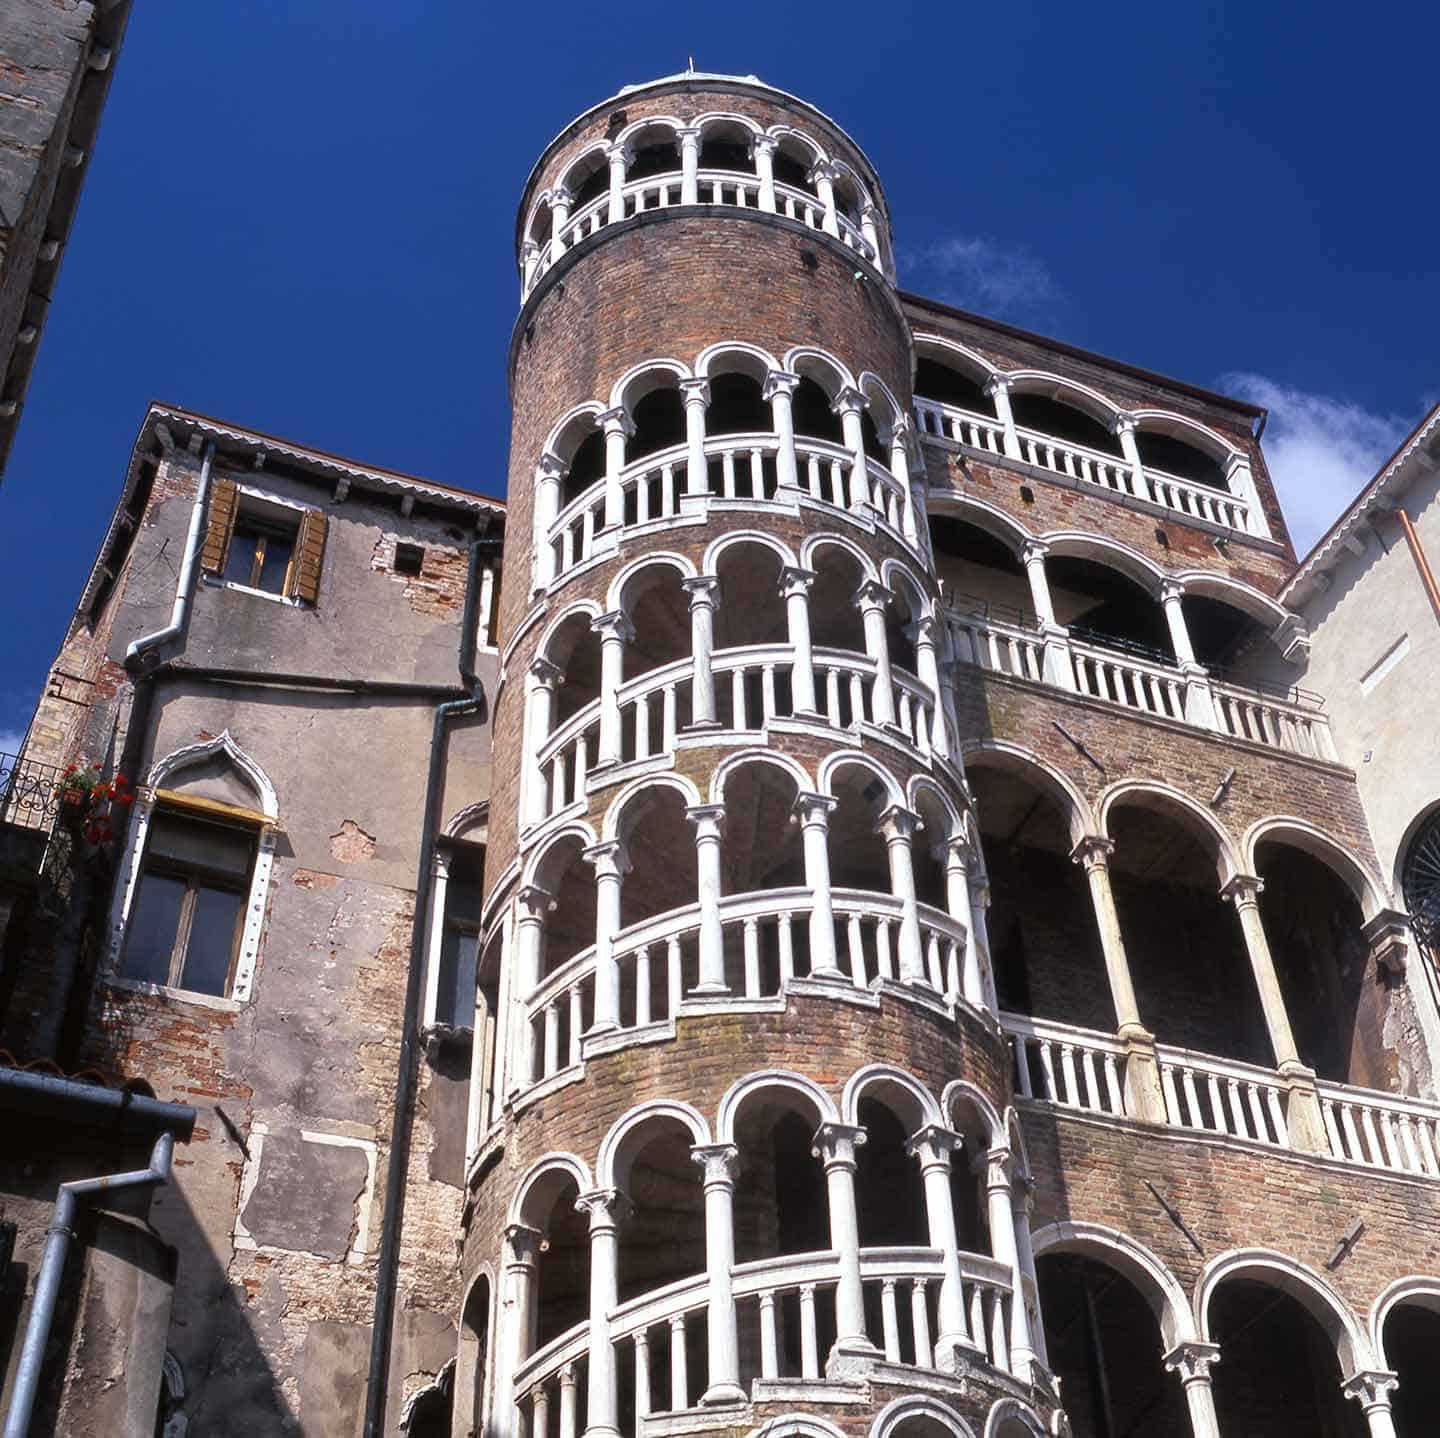 Image of the Scala Contarini del Bovolo staircase in Venice